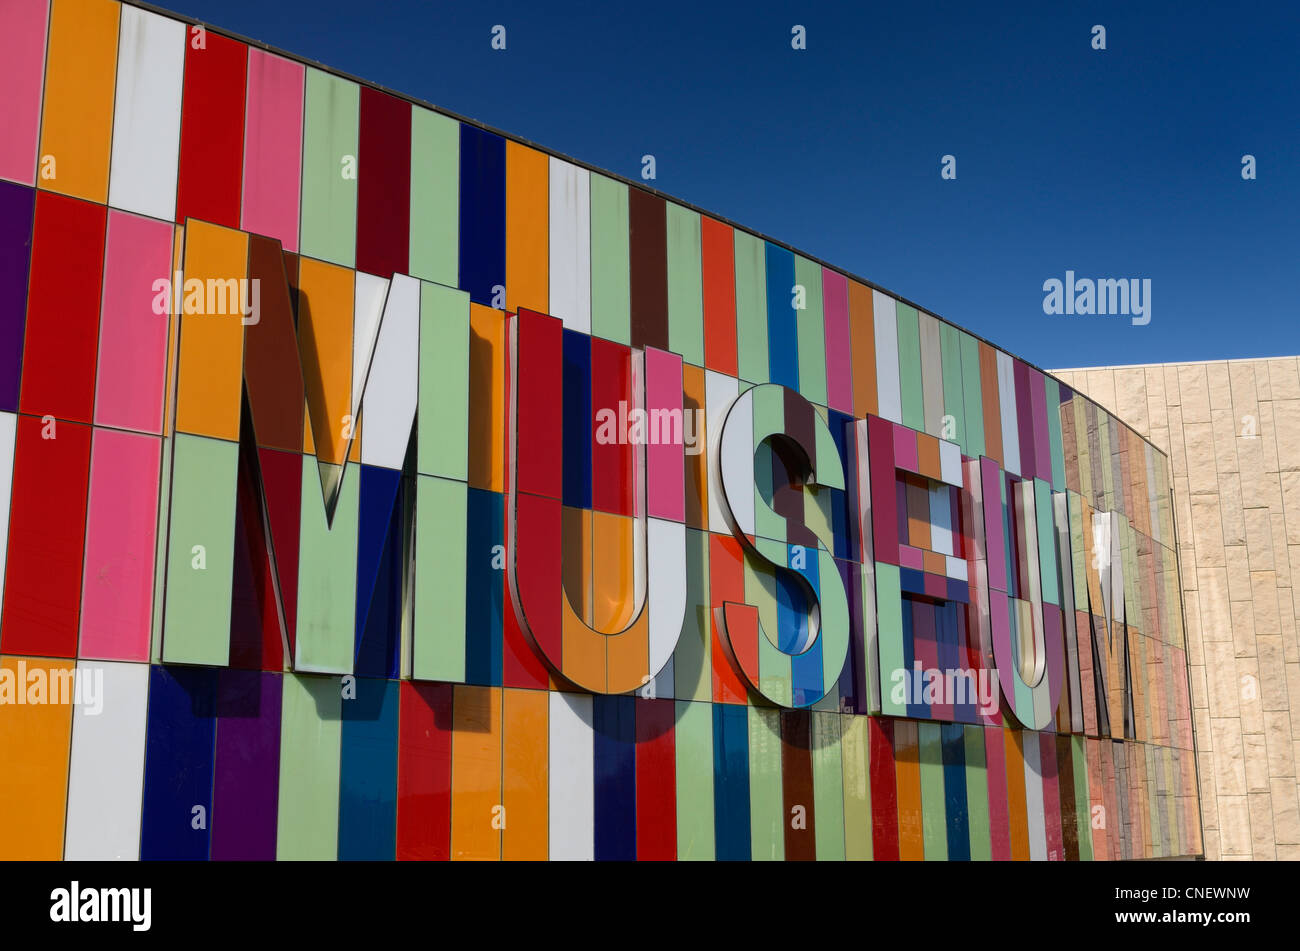 Colorful facade of the Waterloo Regional Museum in Kitchener Ontario Canada - Stock Image